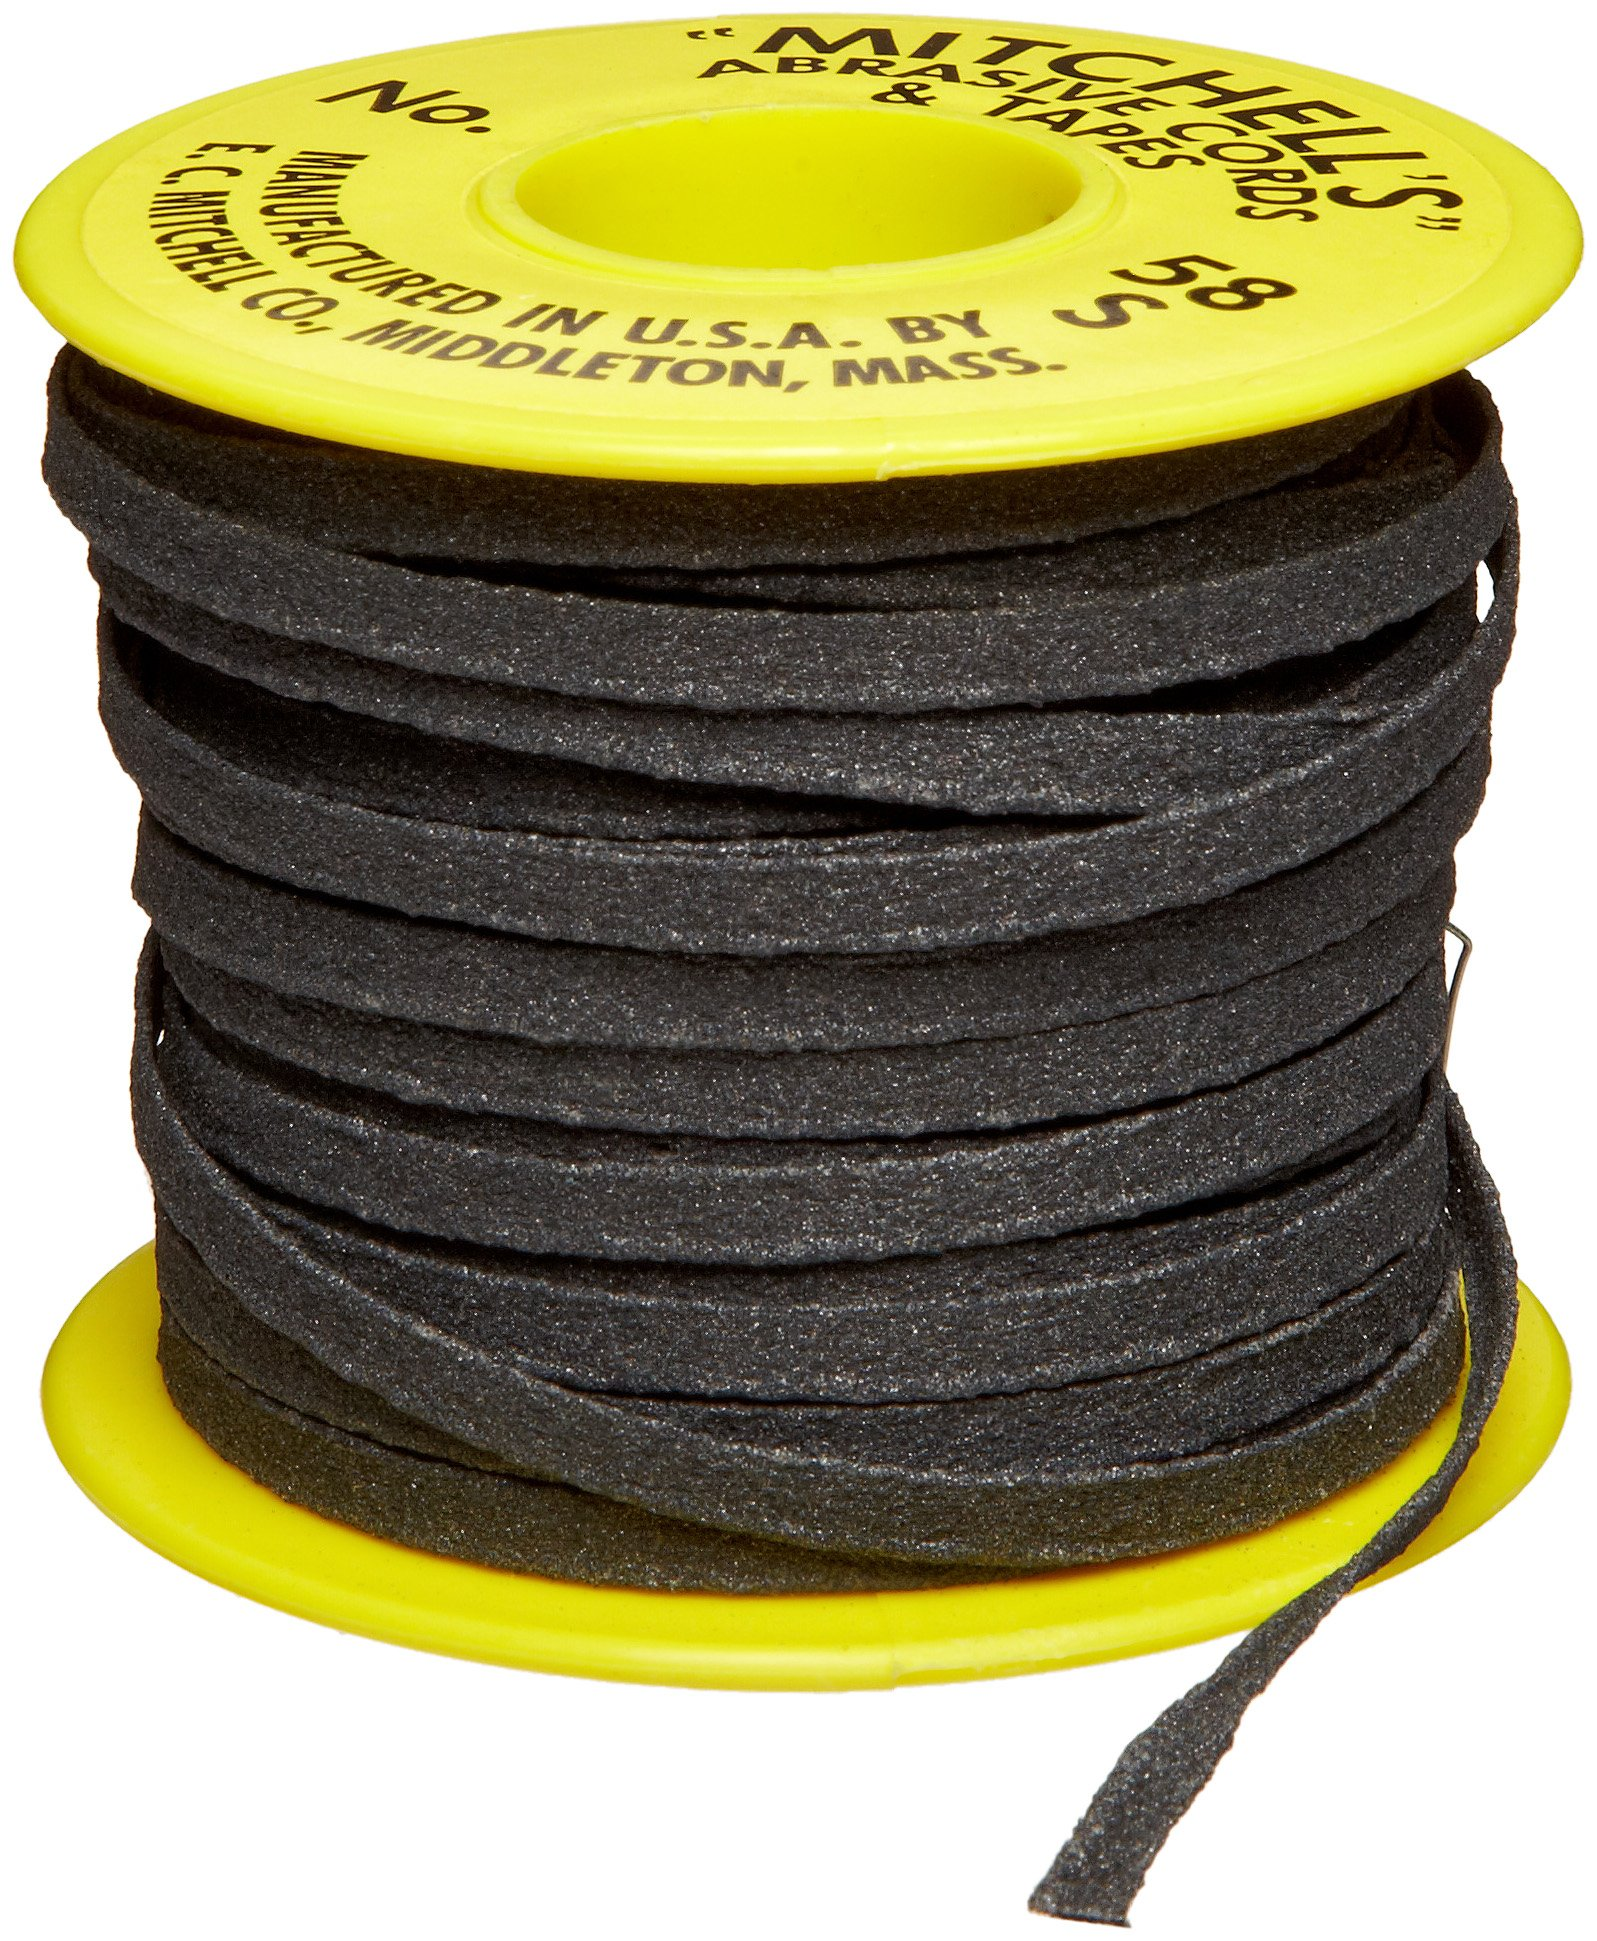 Mitchell Abrasives 58-S Flat Abrasive Tape, Silicon Carbide 150 Grit 3/16'' Wide x 50 Feet